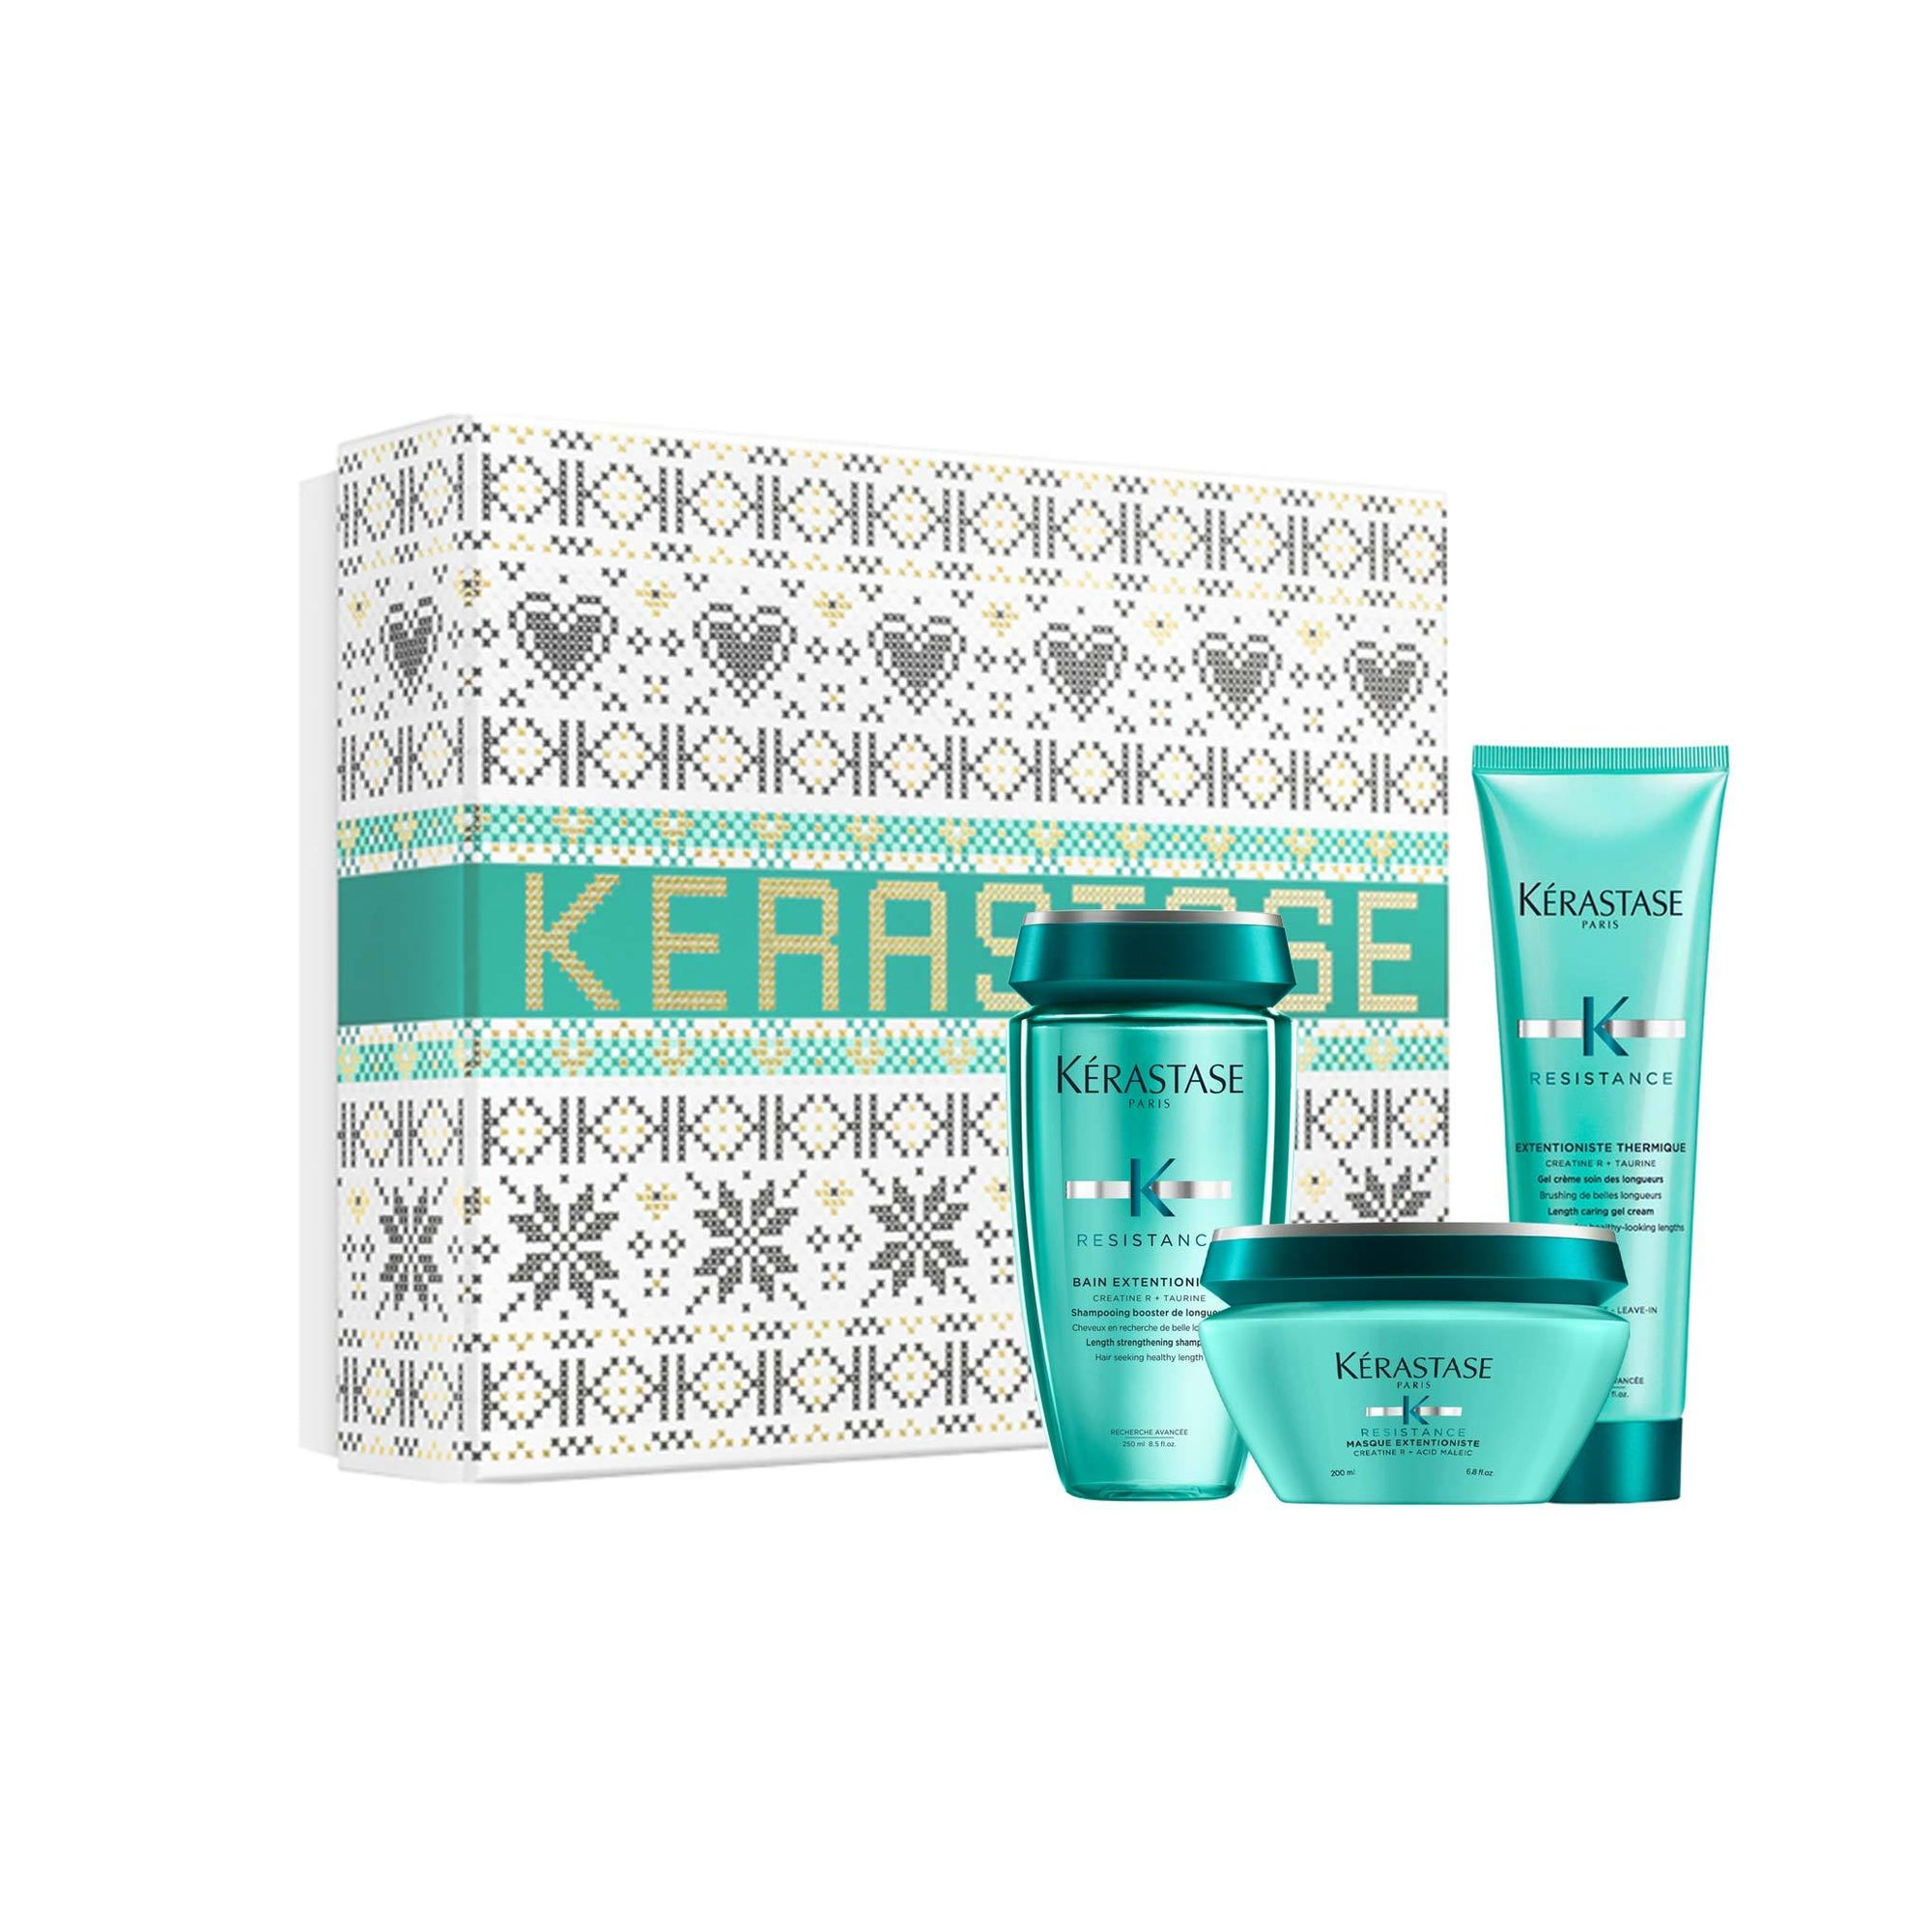 Kérastase Extentioniste Luxury Masque Gift Set For Healthier Looking Lengths